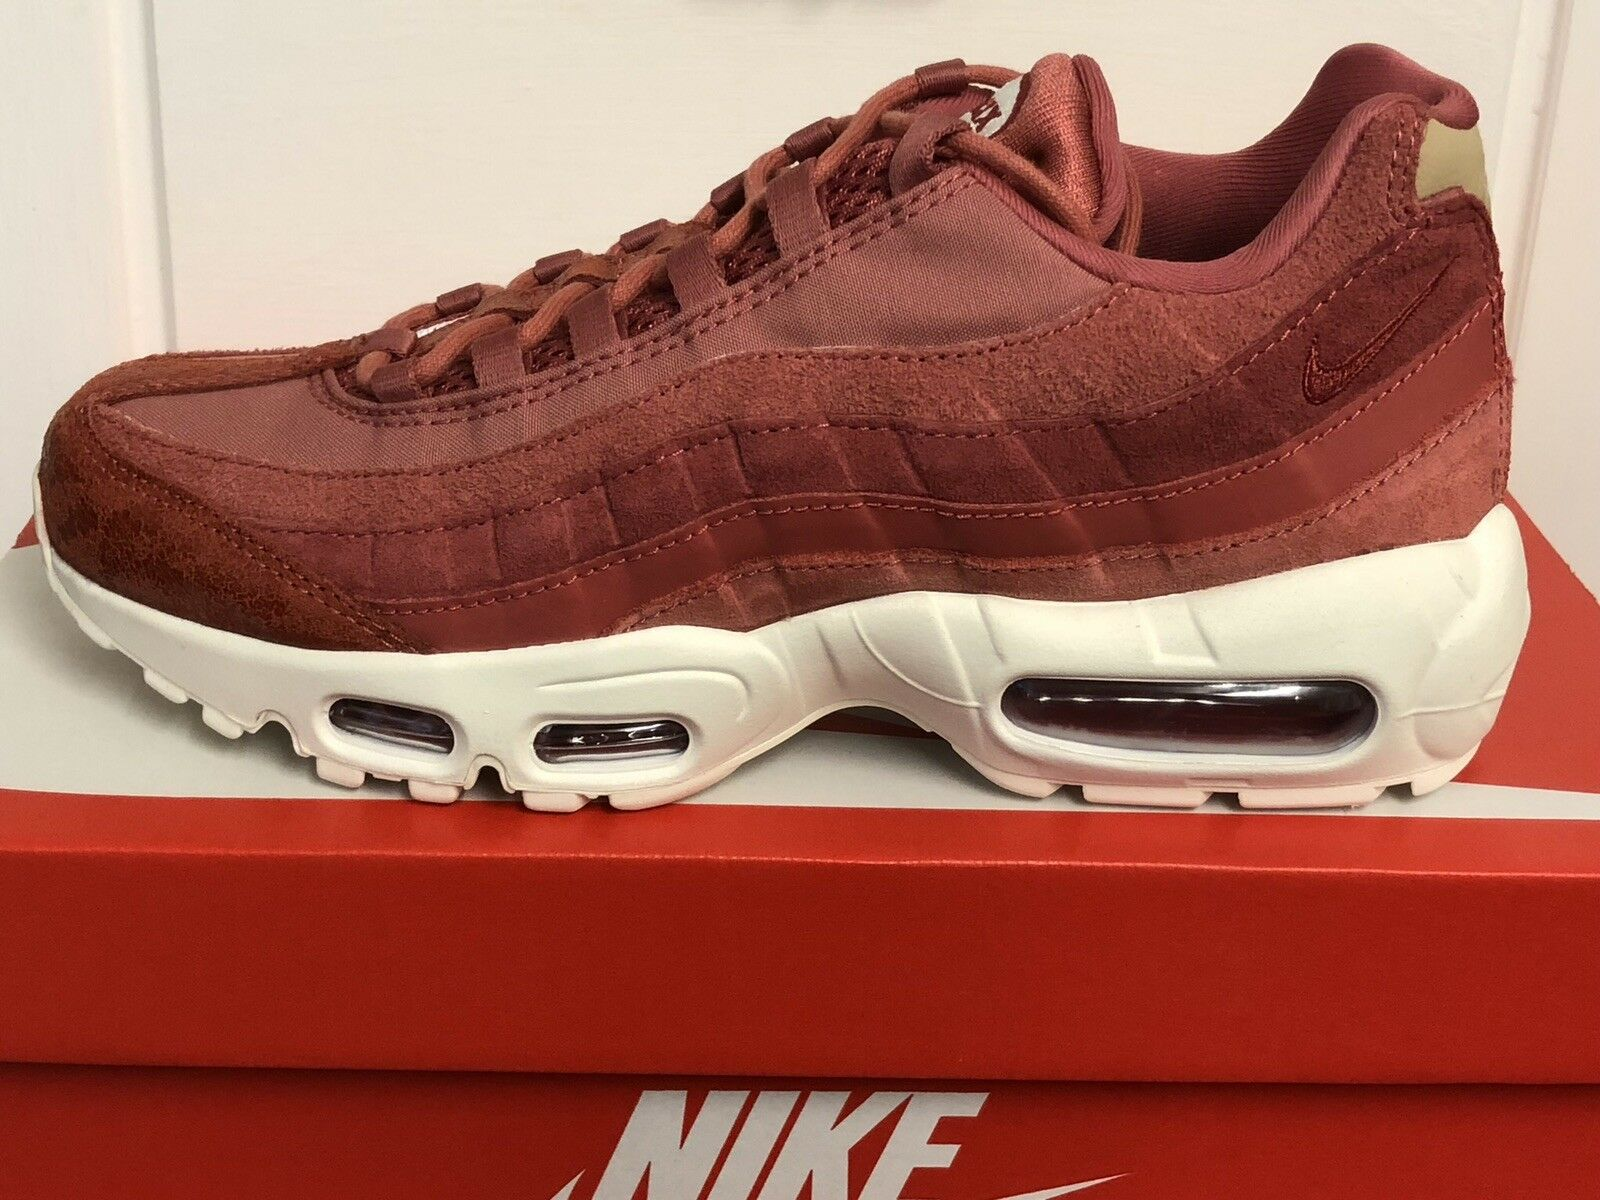 NIKE AIR MAX 95 PRM WOMENS TRAINERS SNEAKERS SHOES UK 5,5 EUR 39 US 8